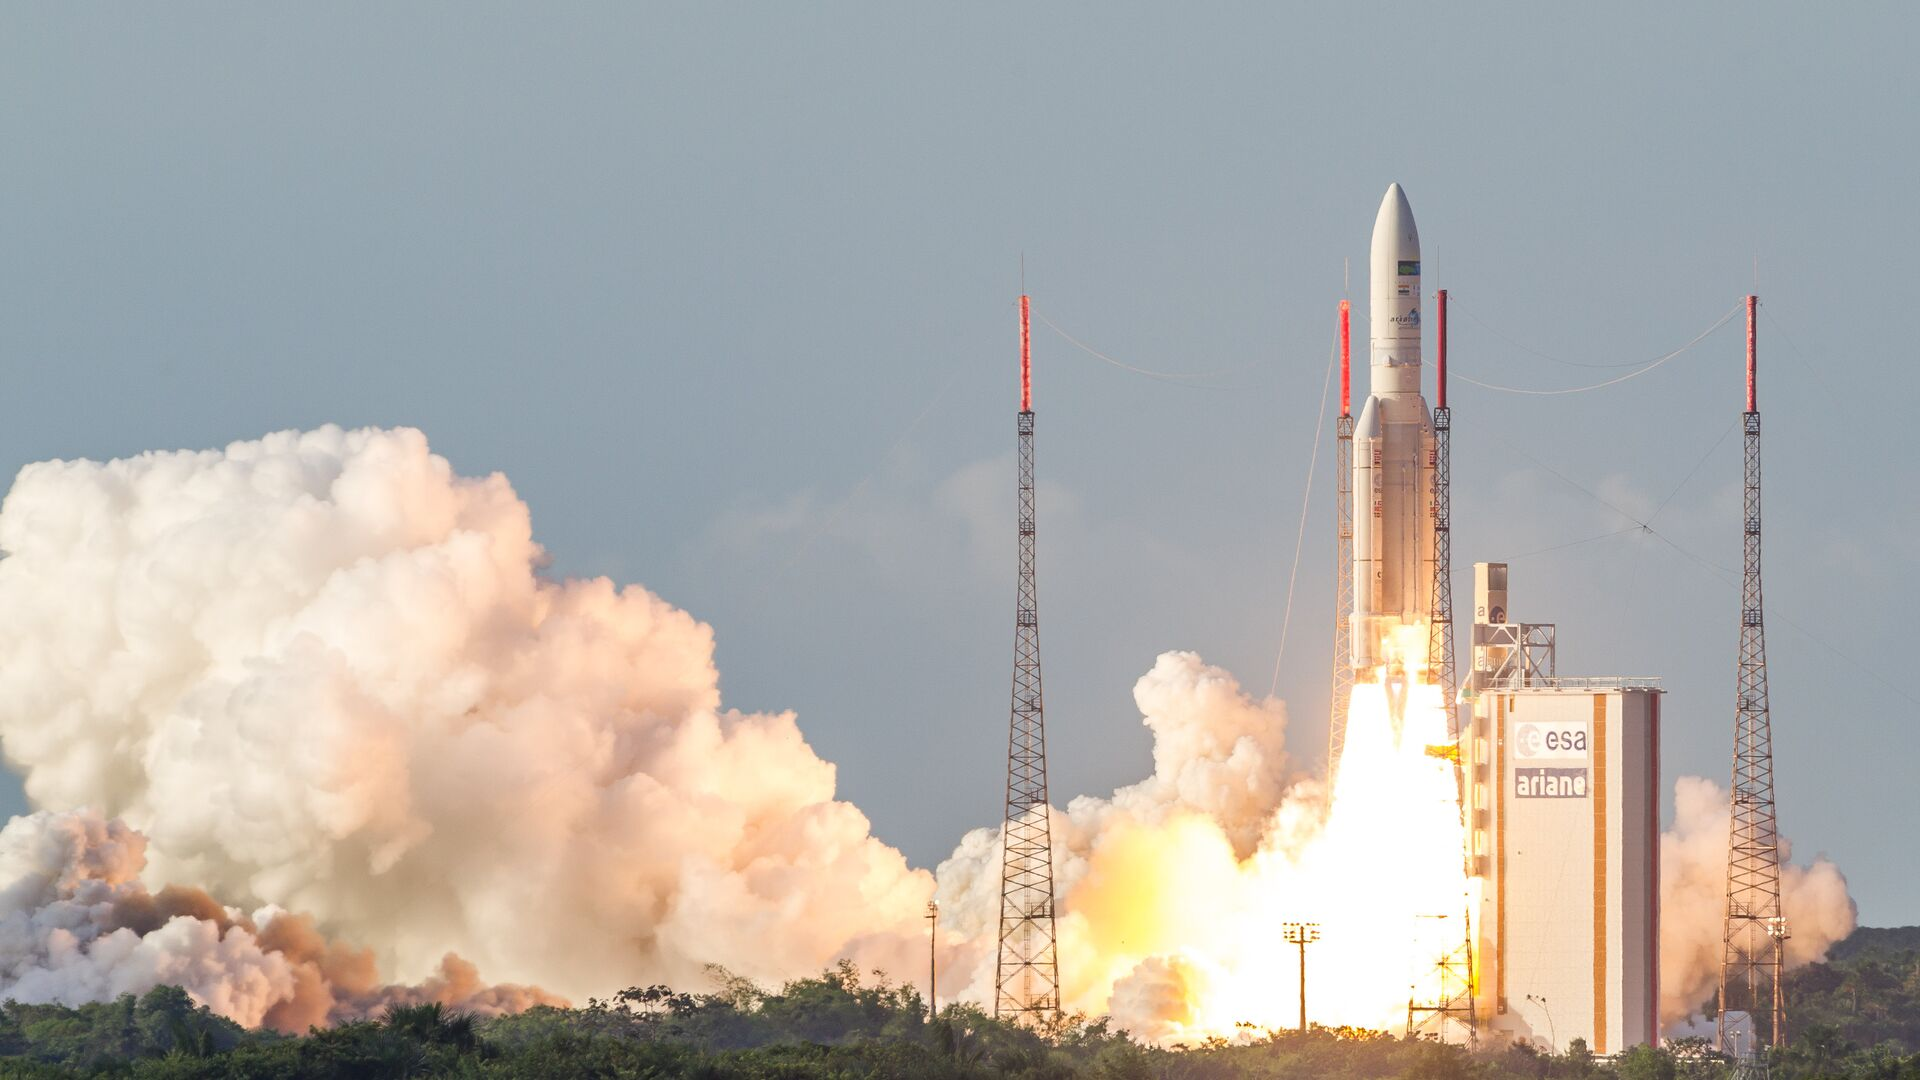 The Ariane 5 rocket lifts off from the Ariane Launchpad Area at the European Spaceport in Kourou, French Guiana, on October 5, 2016. The rocket successfully launched a pair of communications satellites, the australian SKY Muster II and the indian GSAT-18. - Sputnik Mundo, 1920, 30.07.2021